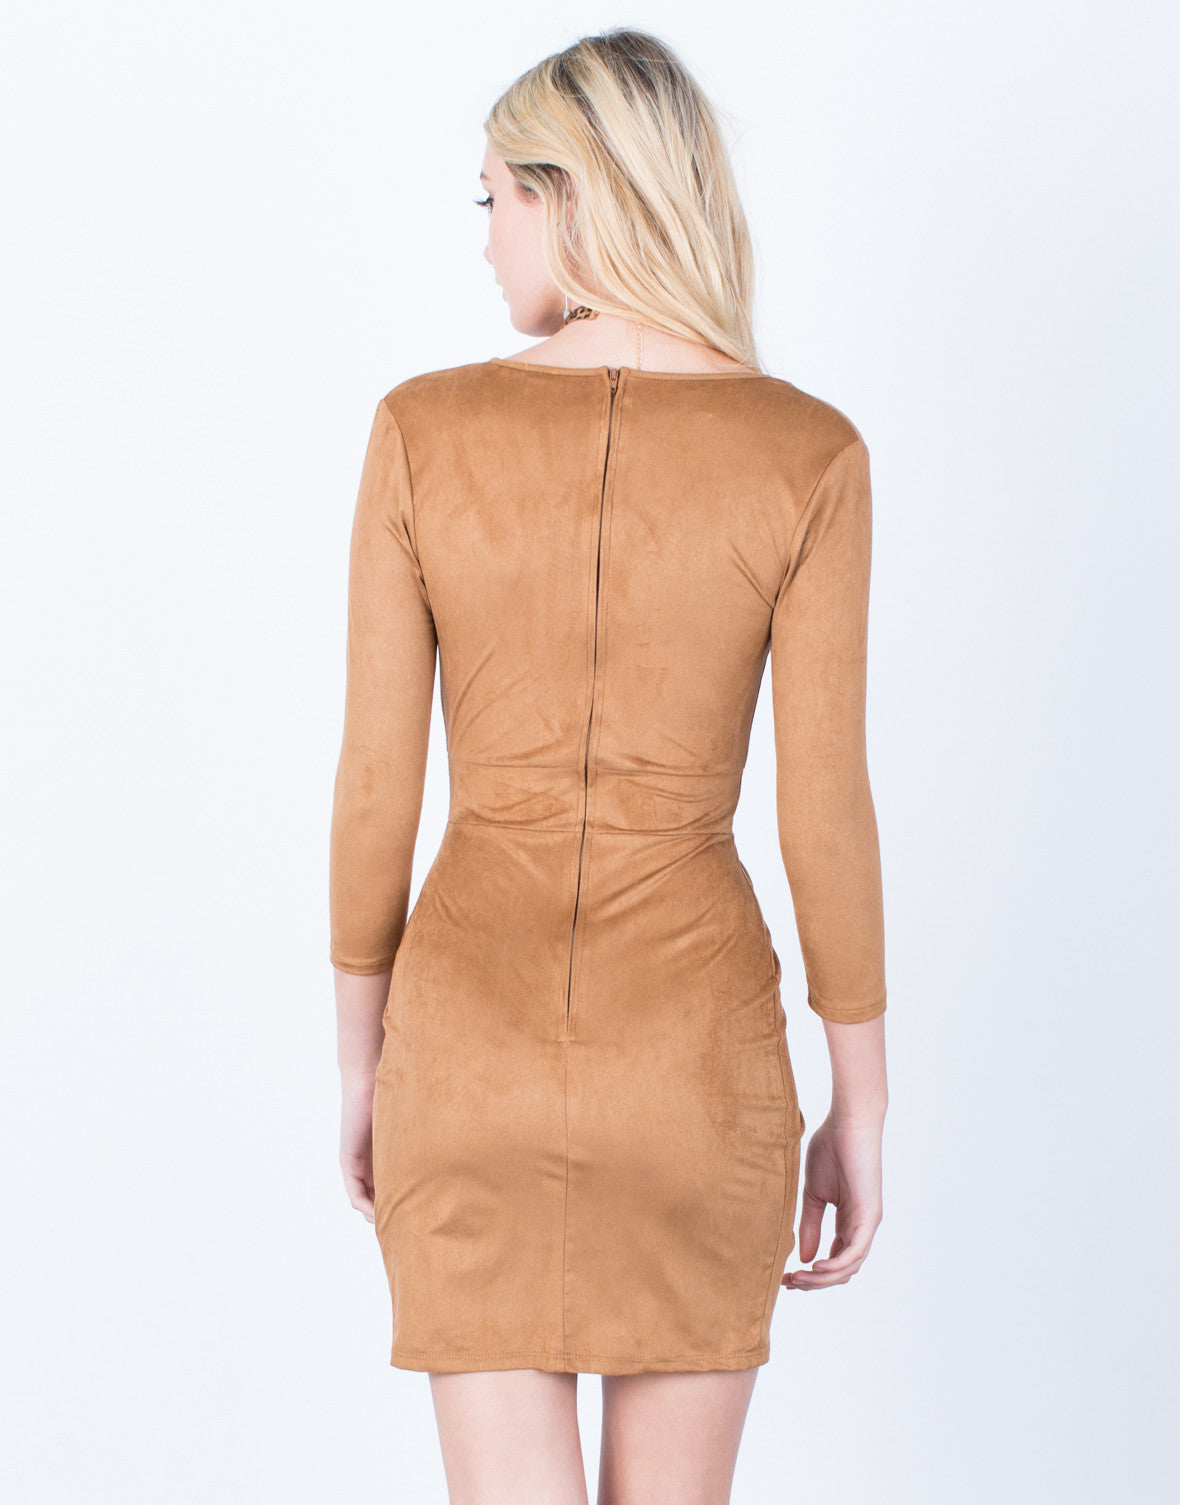 Back View of Wrapped Suede Dress